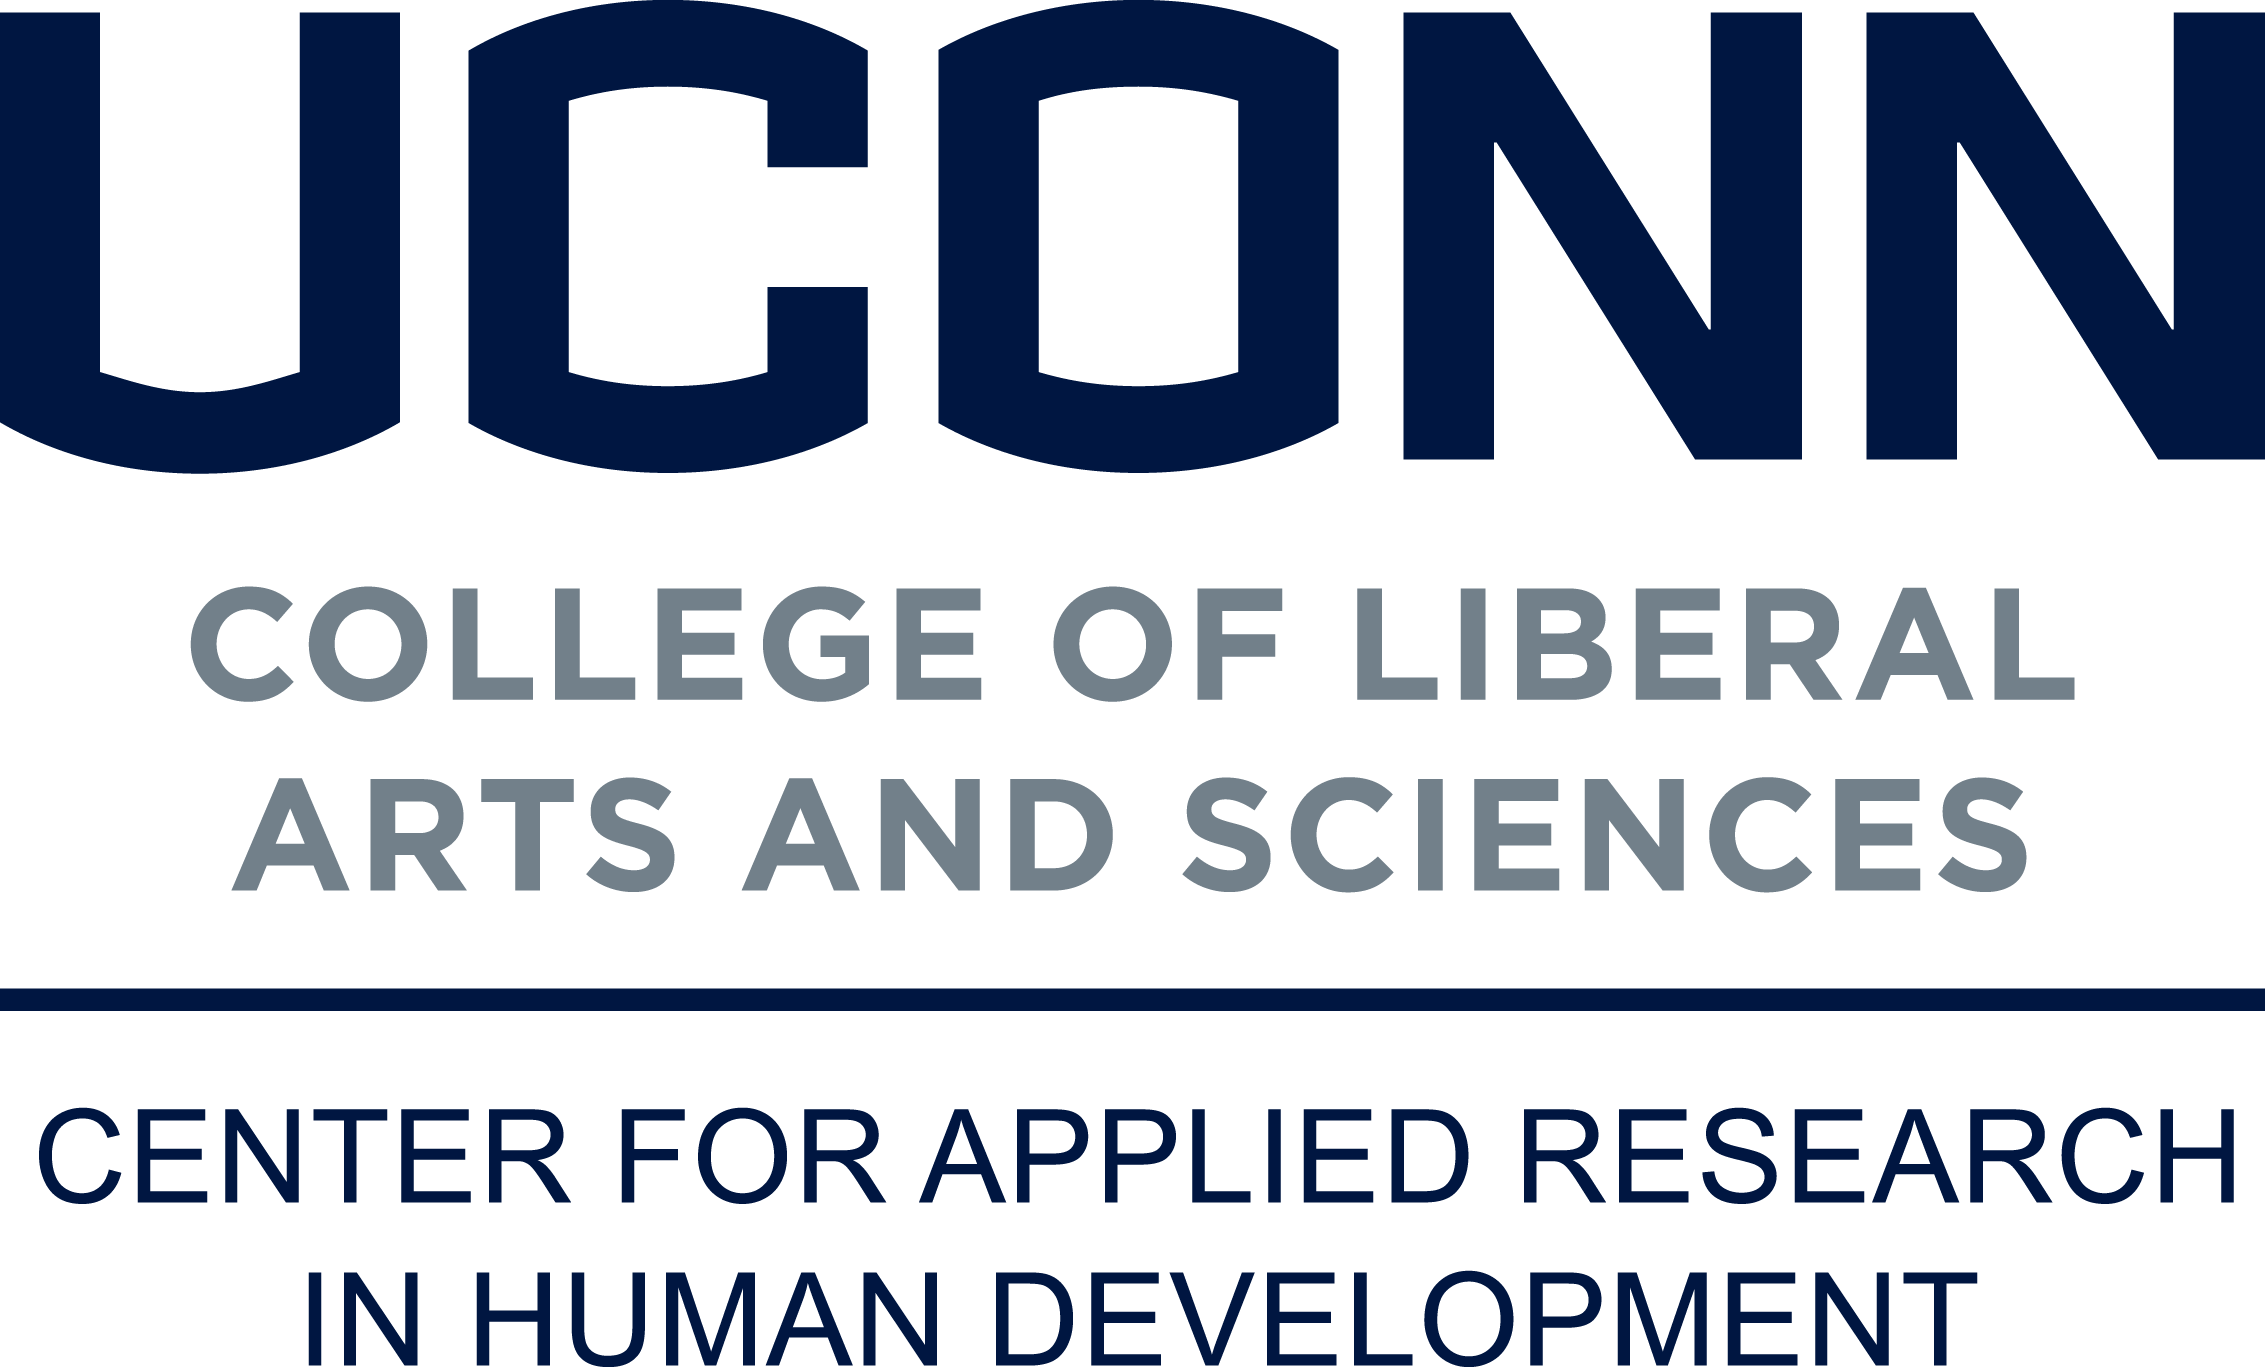 UConn Center for Applied Research in Human Development wordmark